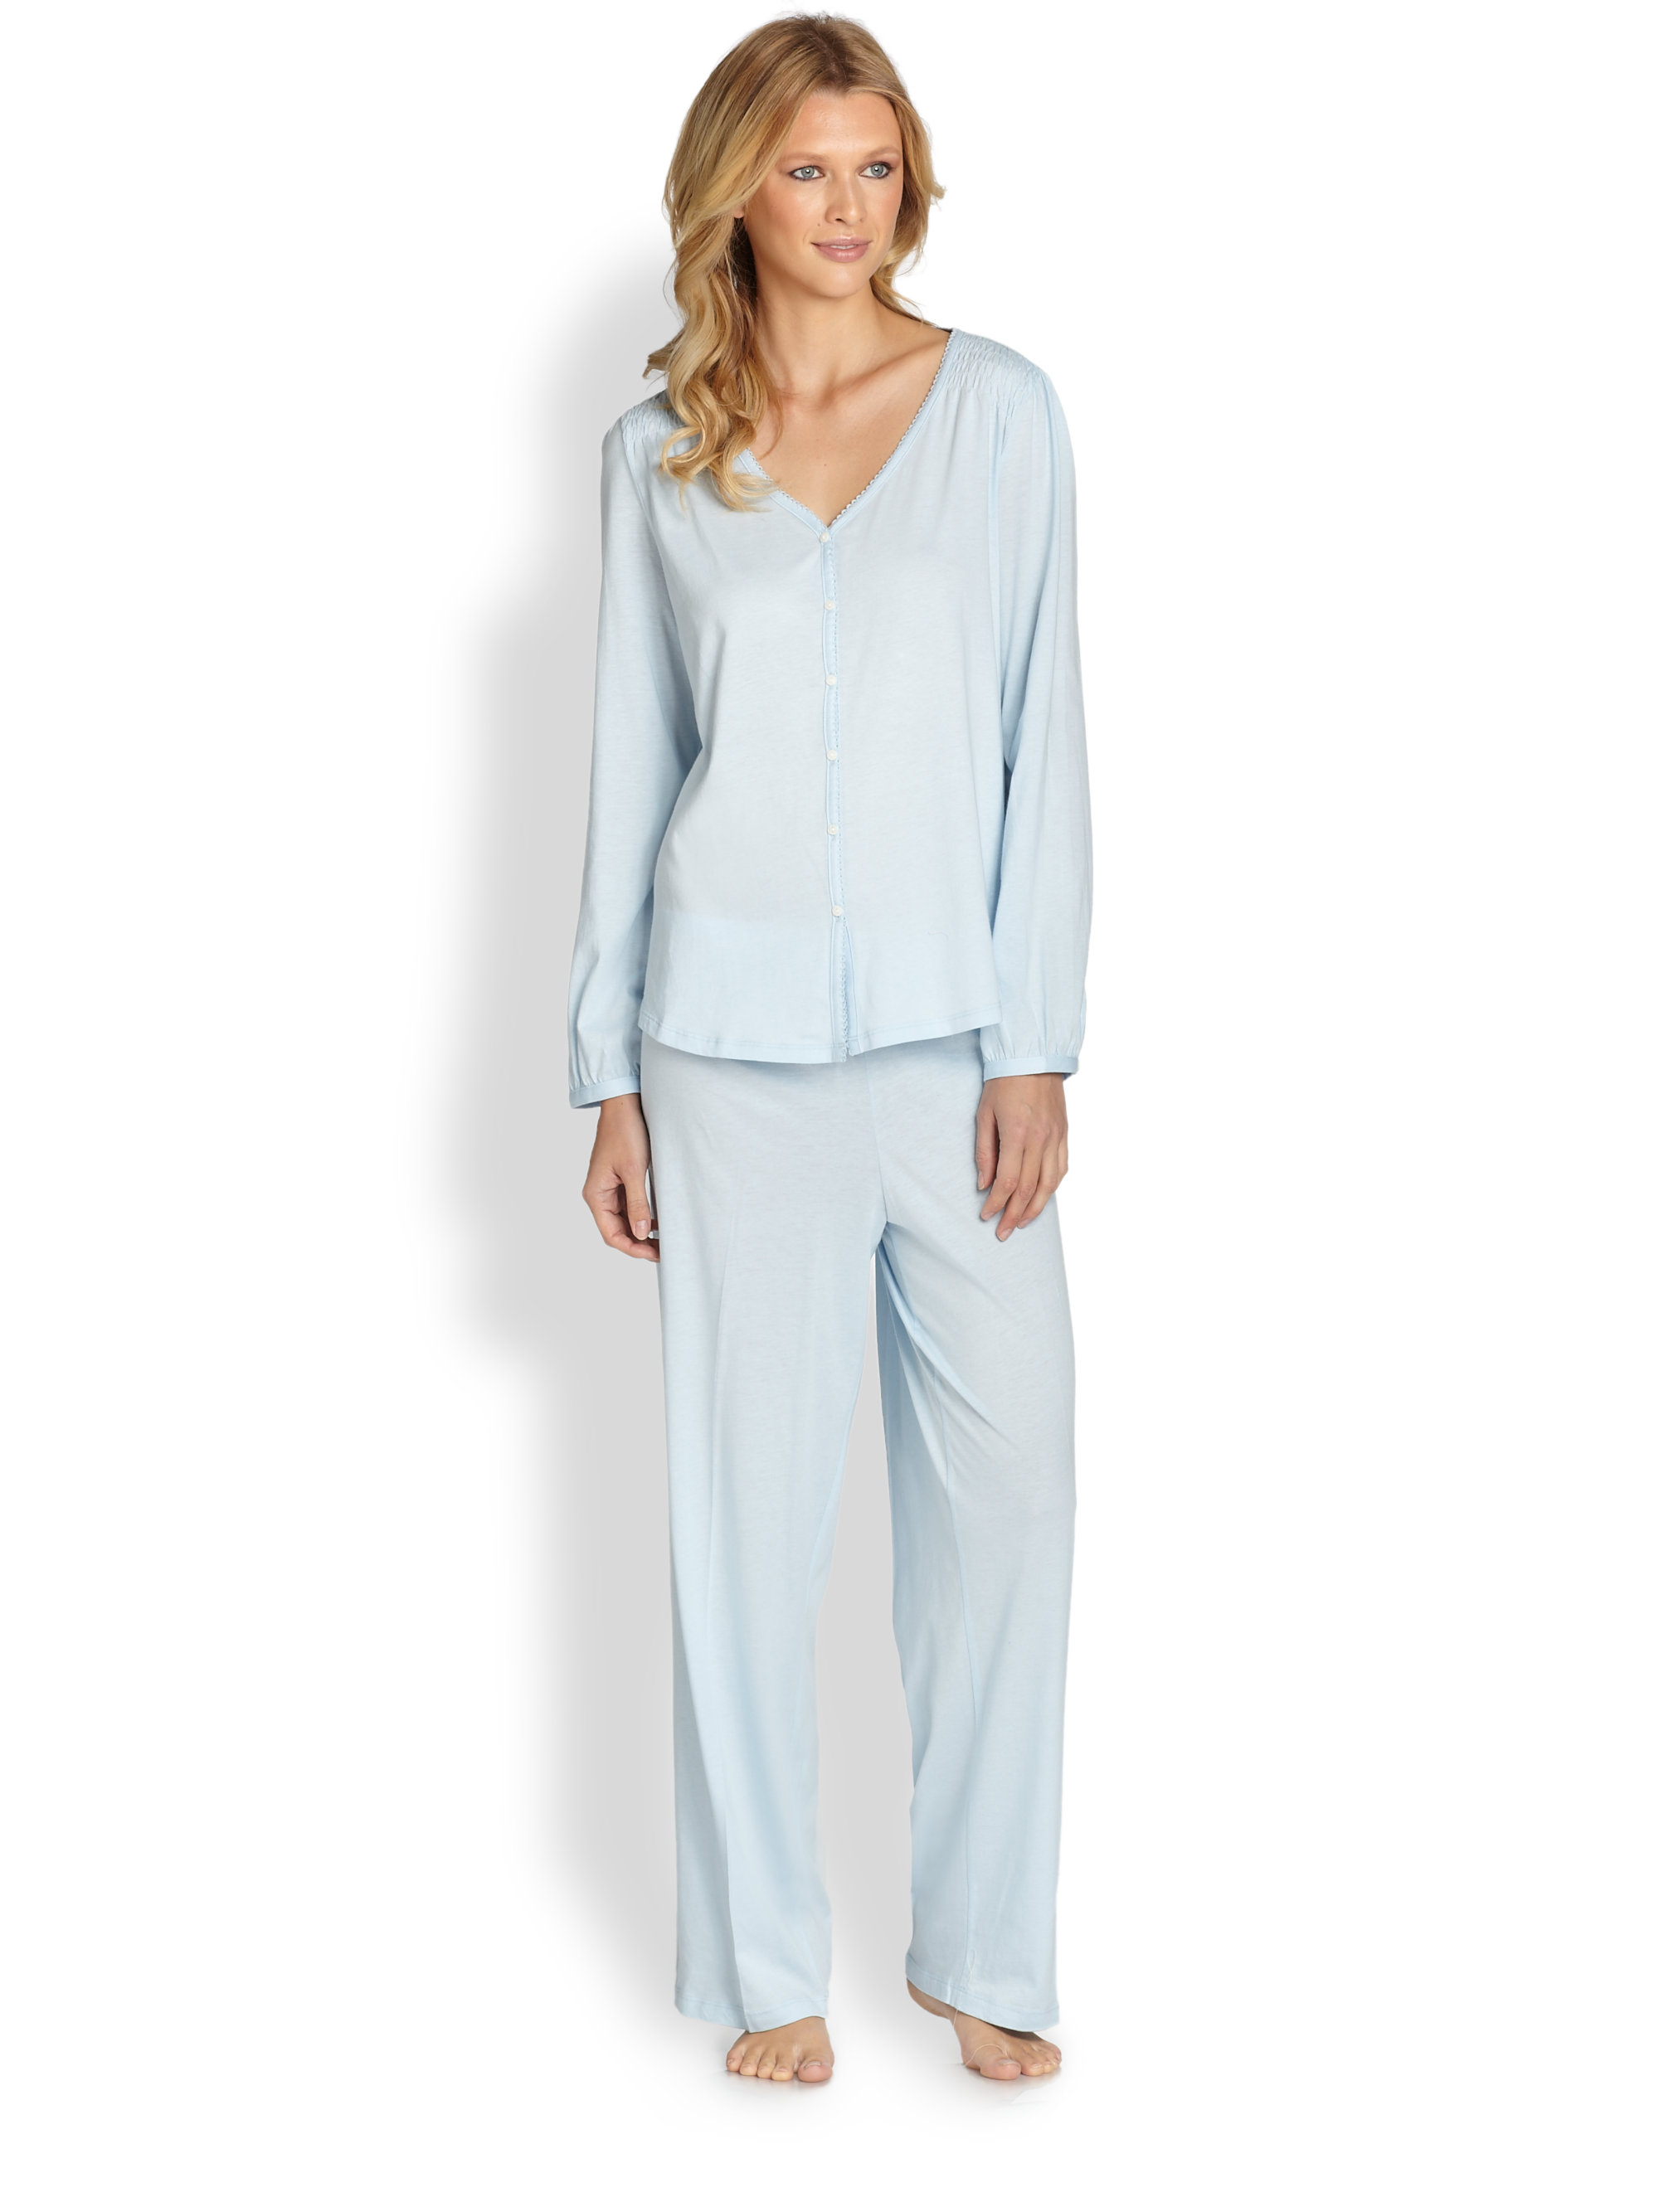 Pajama sets are also available in lightweight materials like cotton that are perfectly suited to the temperature of the warmer spring months. A plush bathrobe is a must whether you're just getting out of the shower or simply lounging around the house.